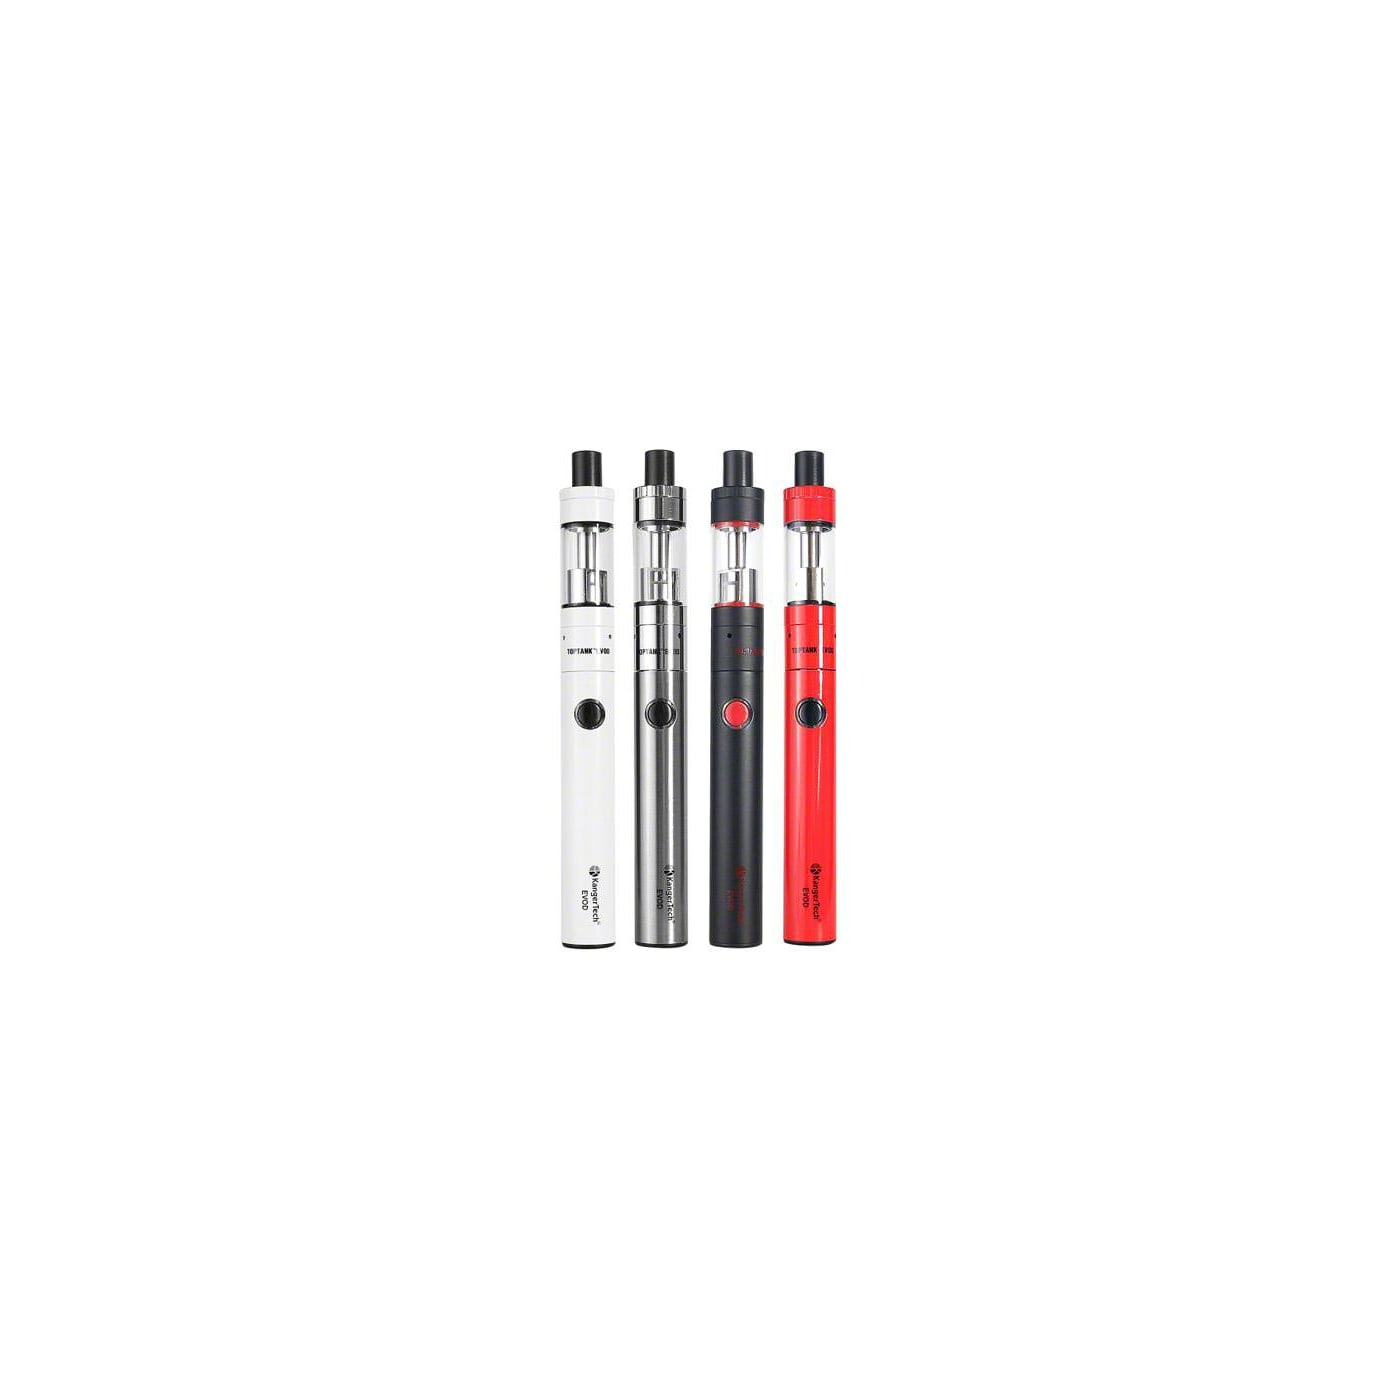 Kanger Top EVOD Vape Starter Kit Colors